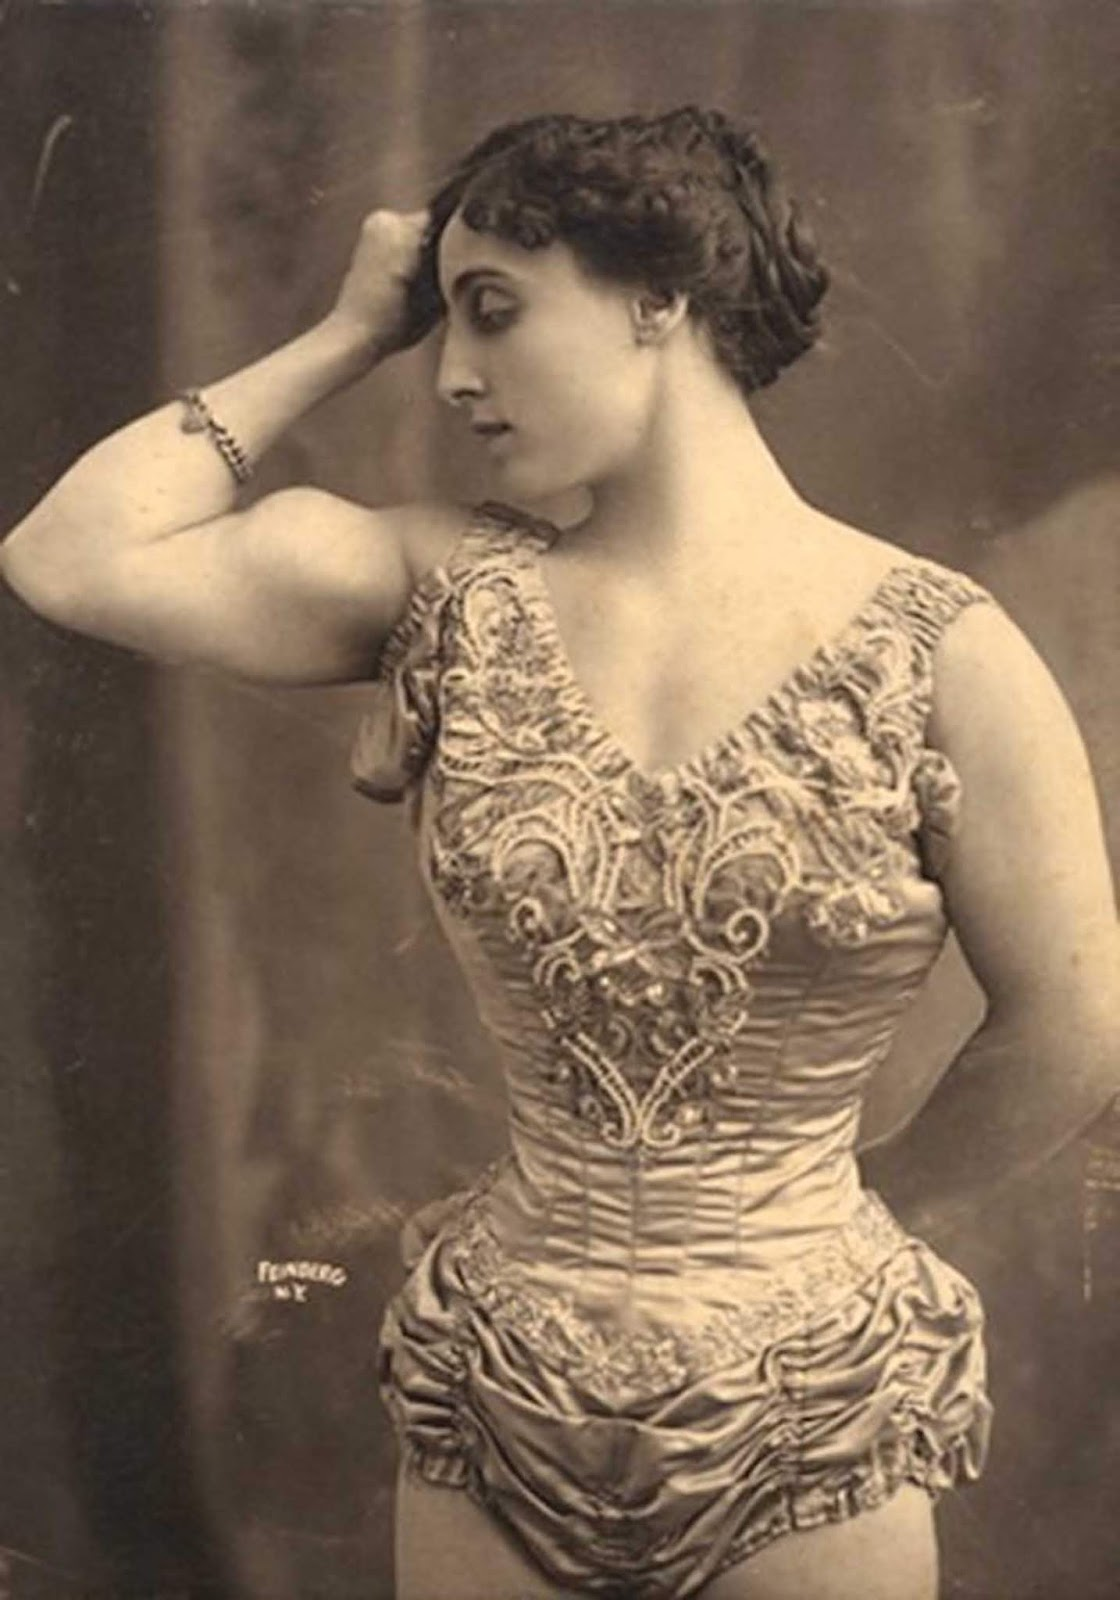 The first female bodybuilders and strongwomen showing off